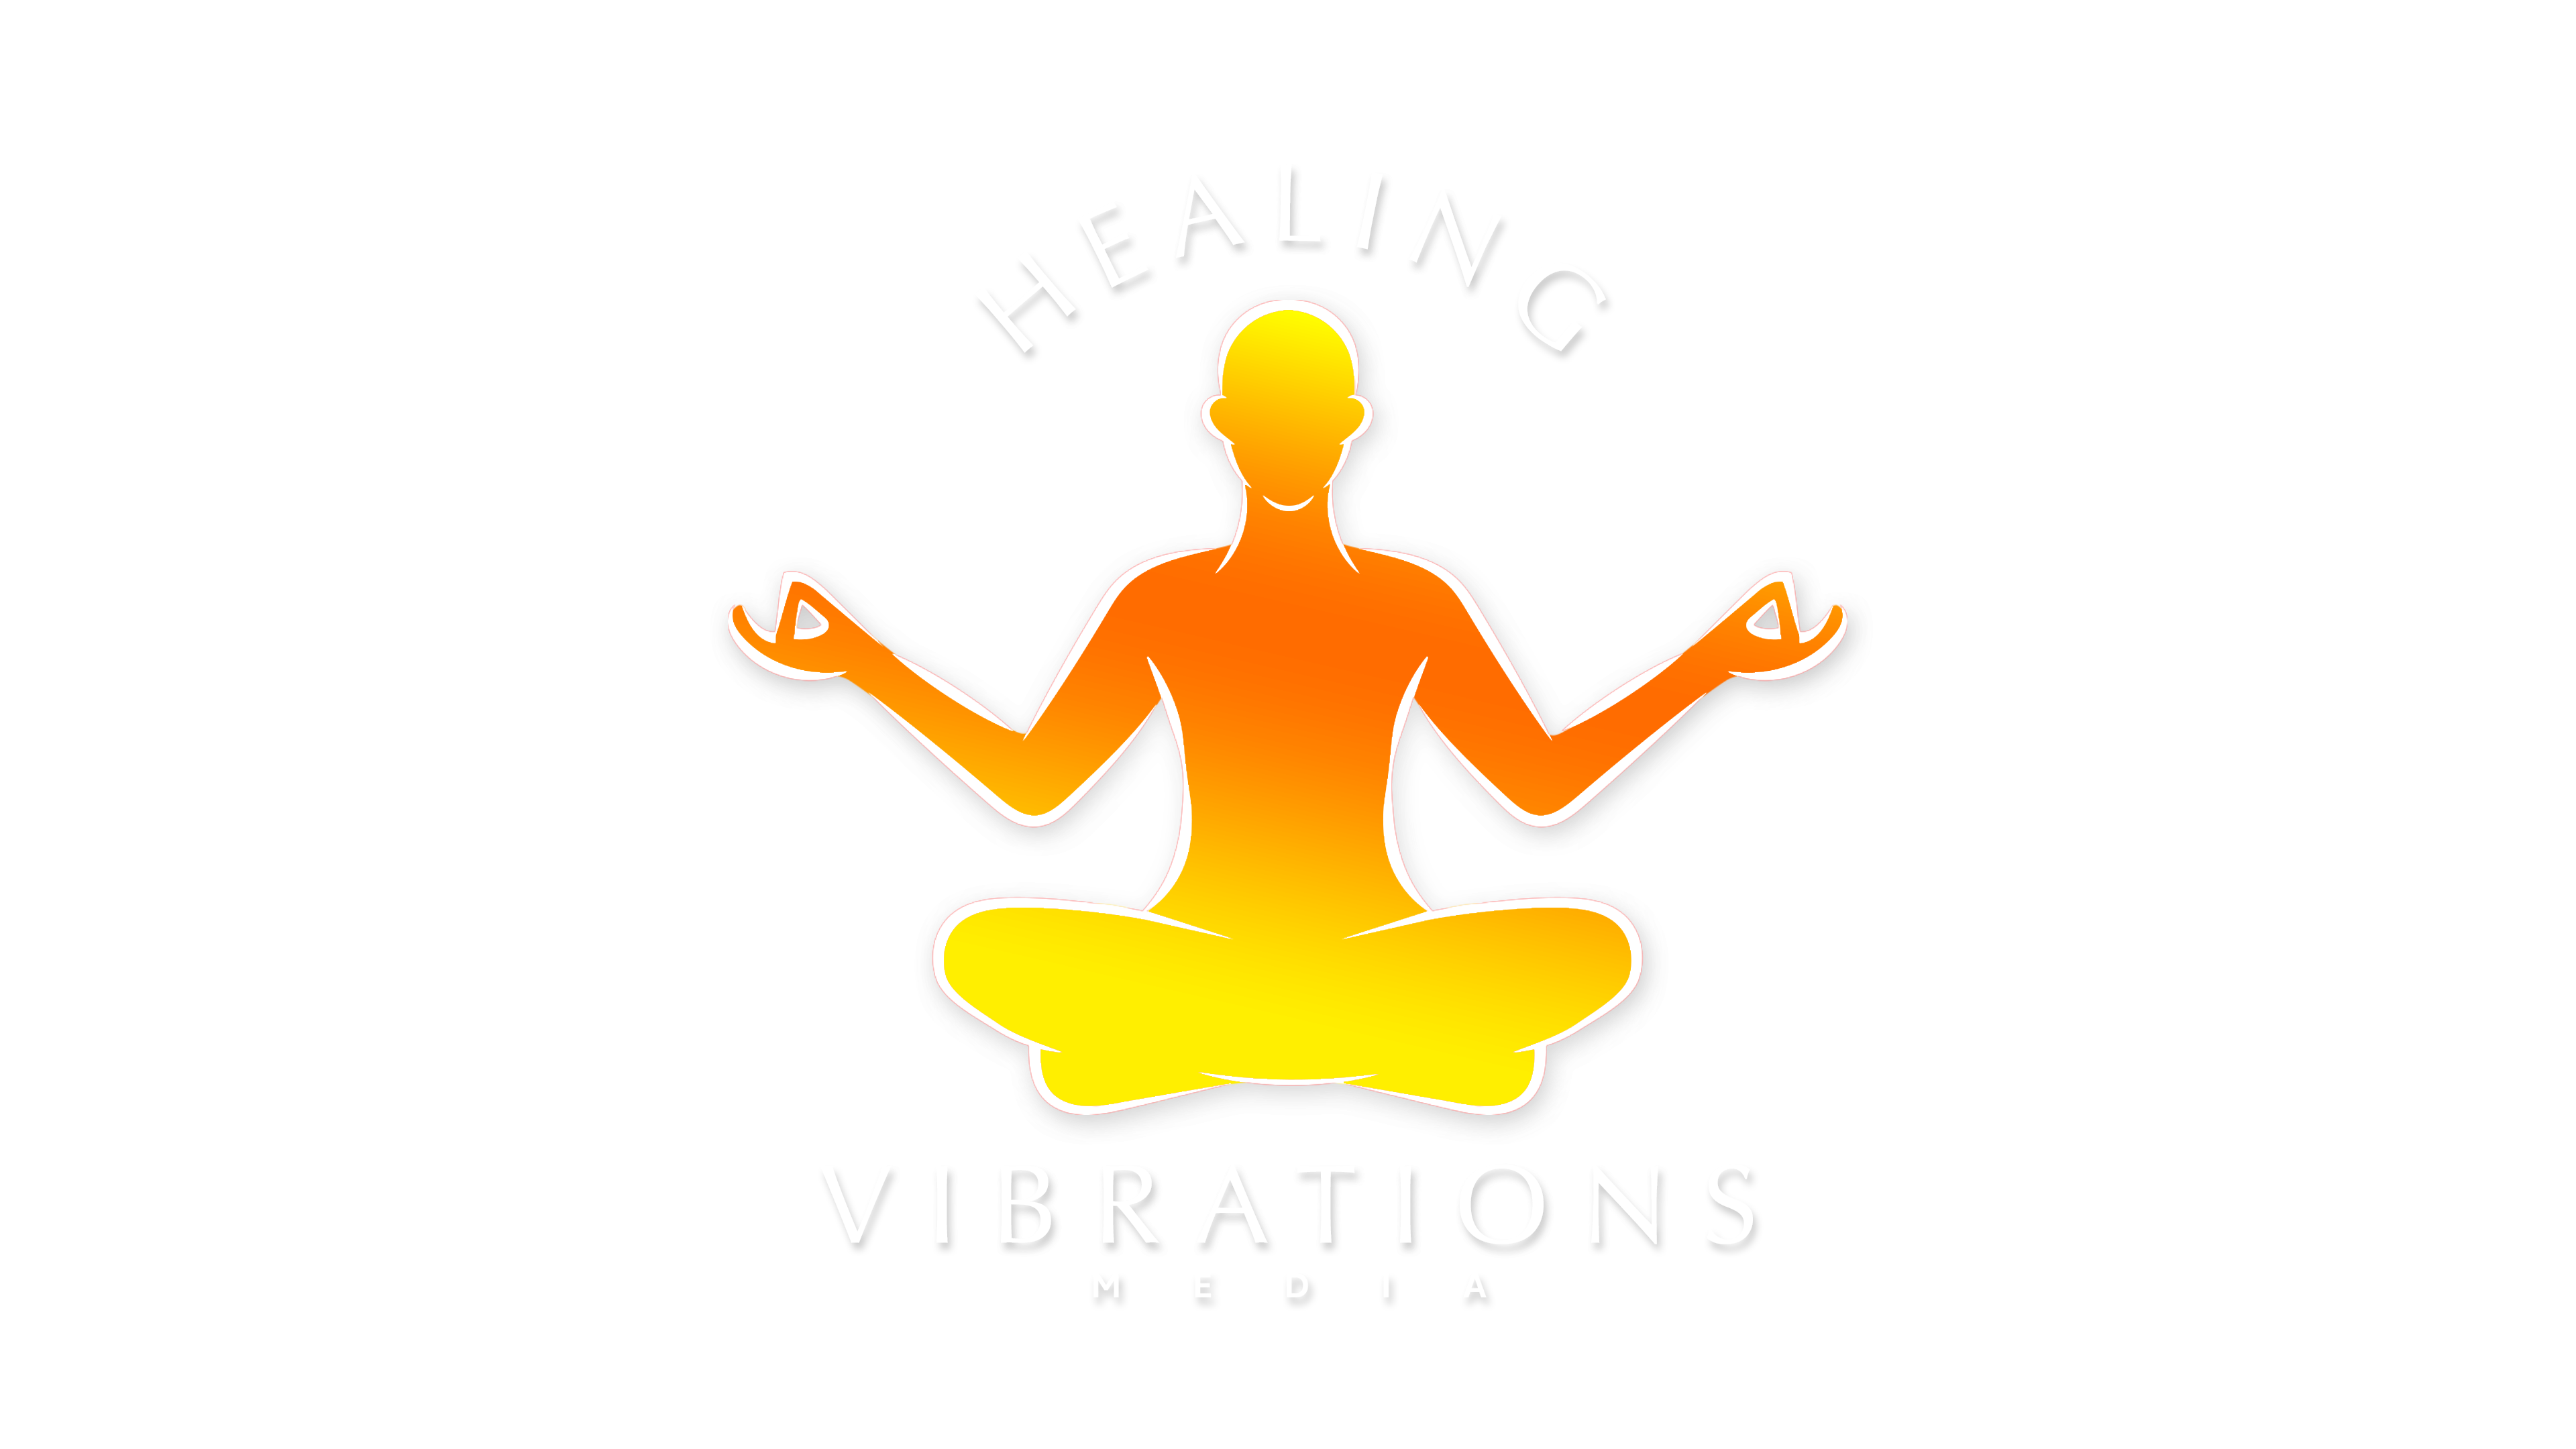 Healing Vibrations Logo 06-01-2020 - No BG - White Text and Outline - Glow